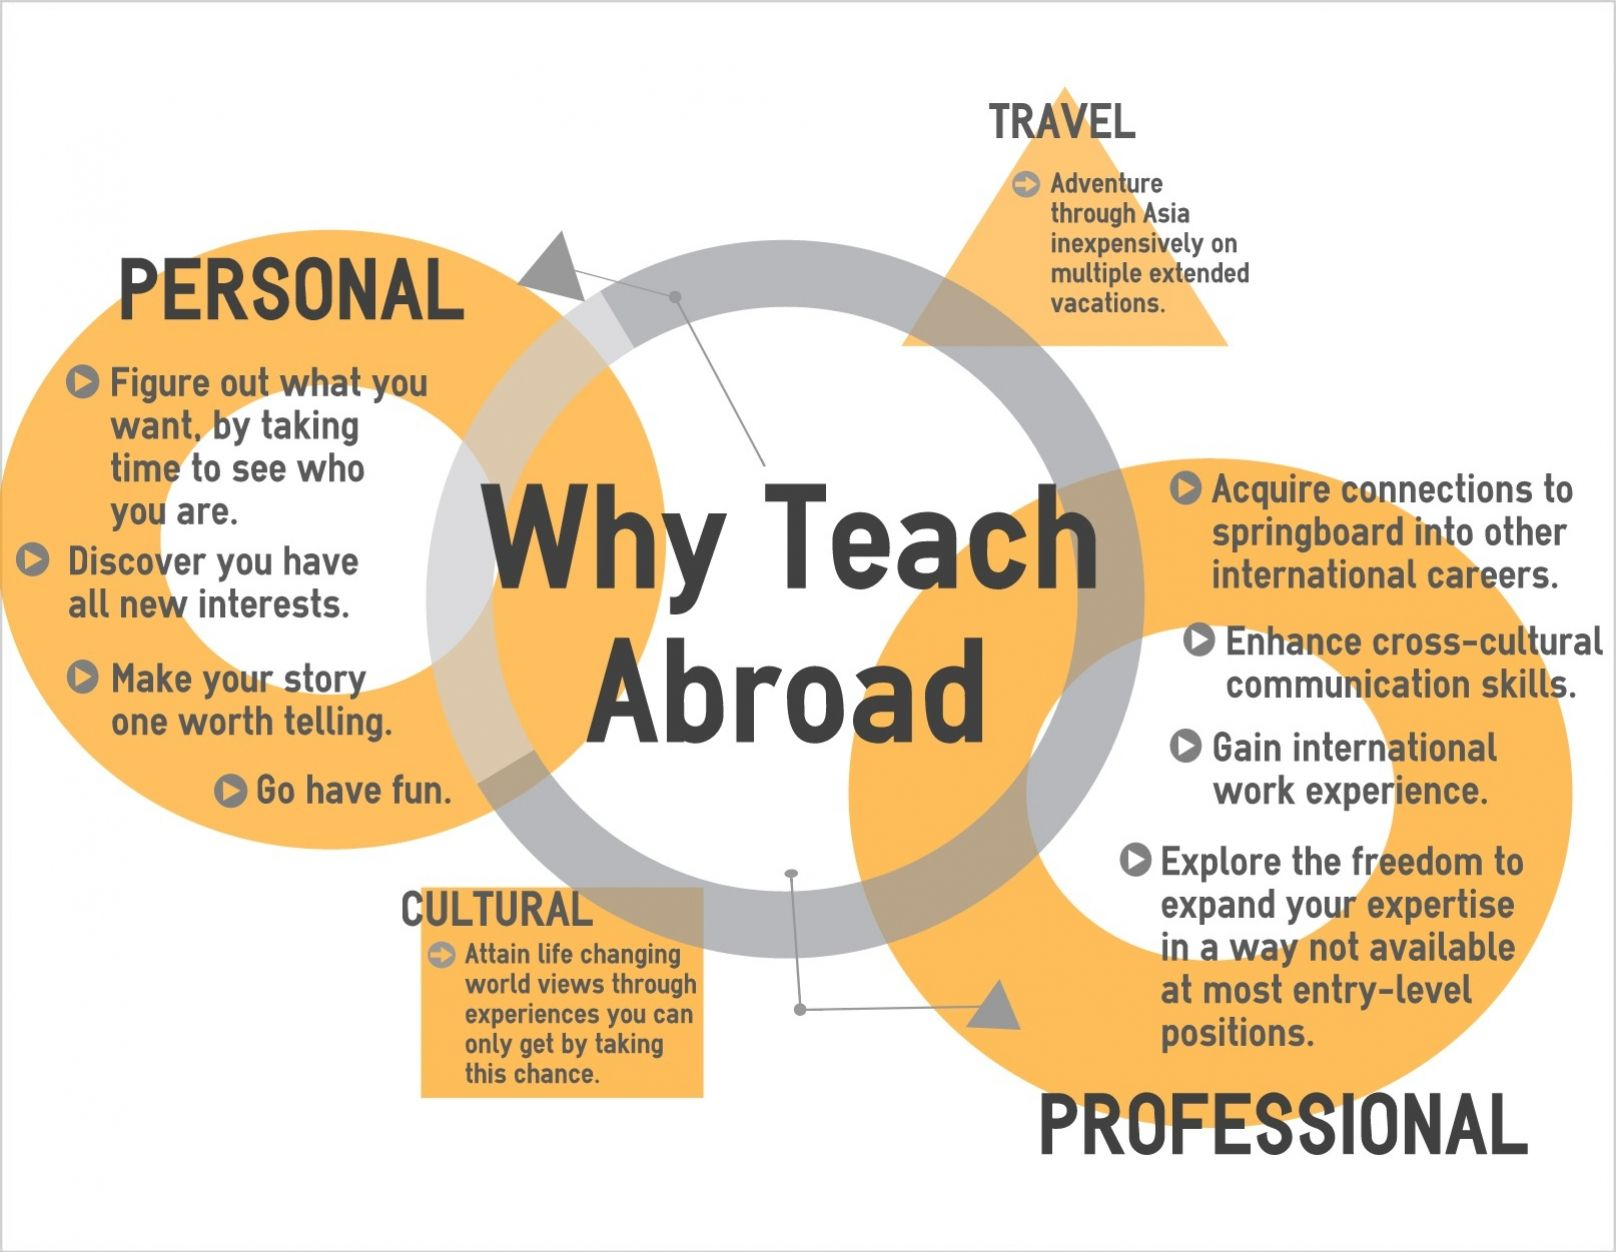 Obalteachingexchange Can Help Gain International